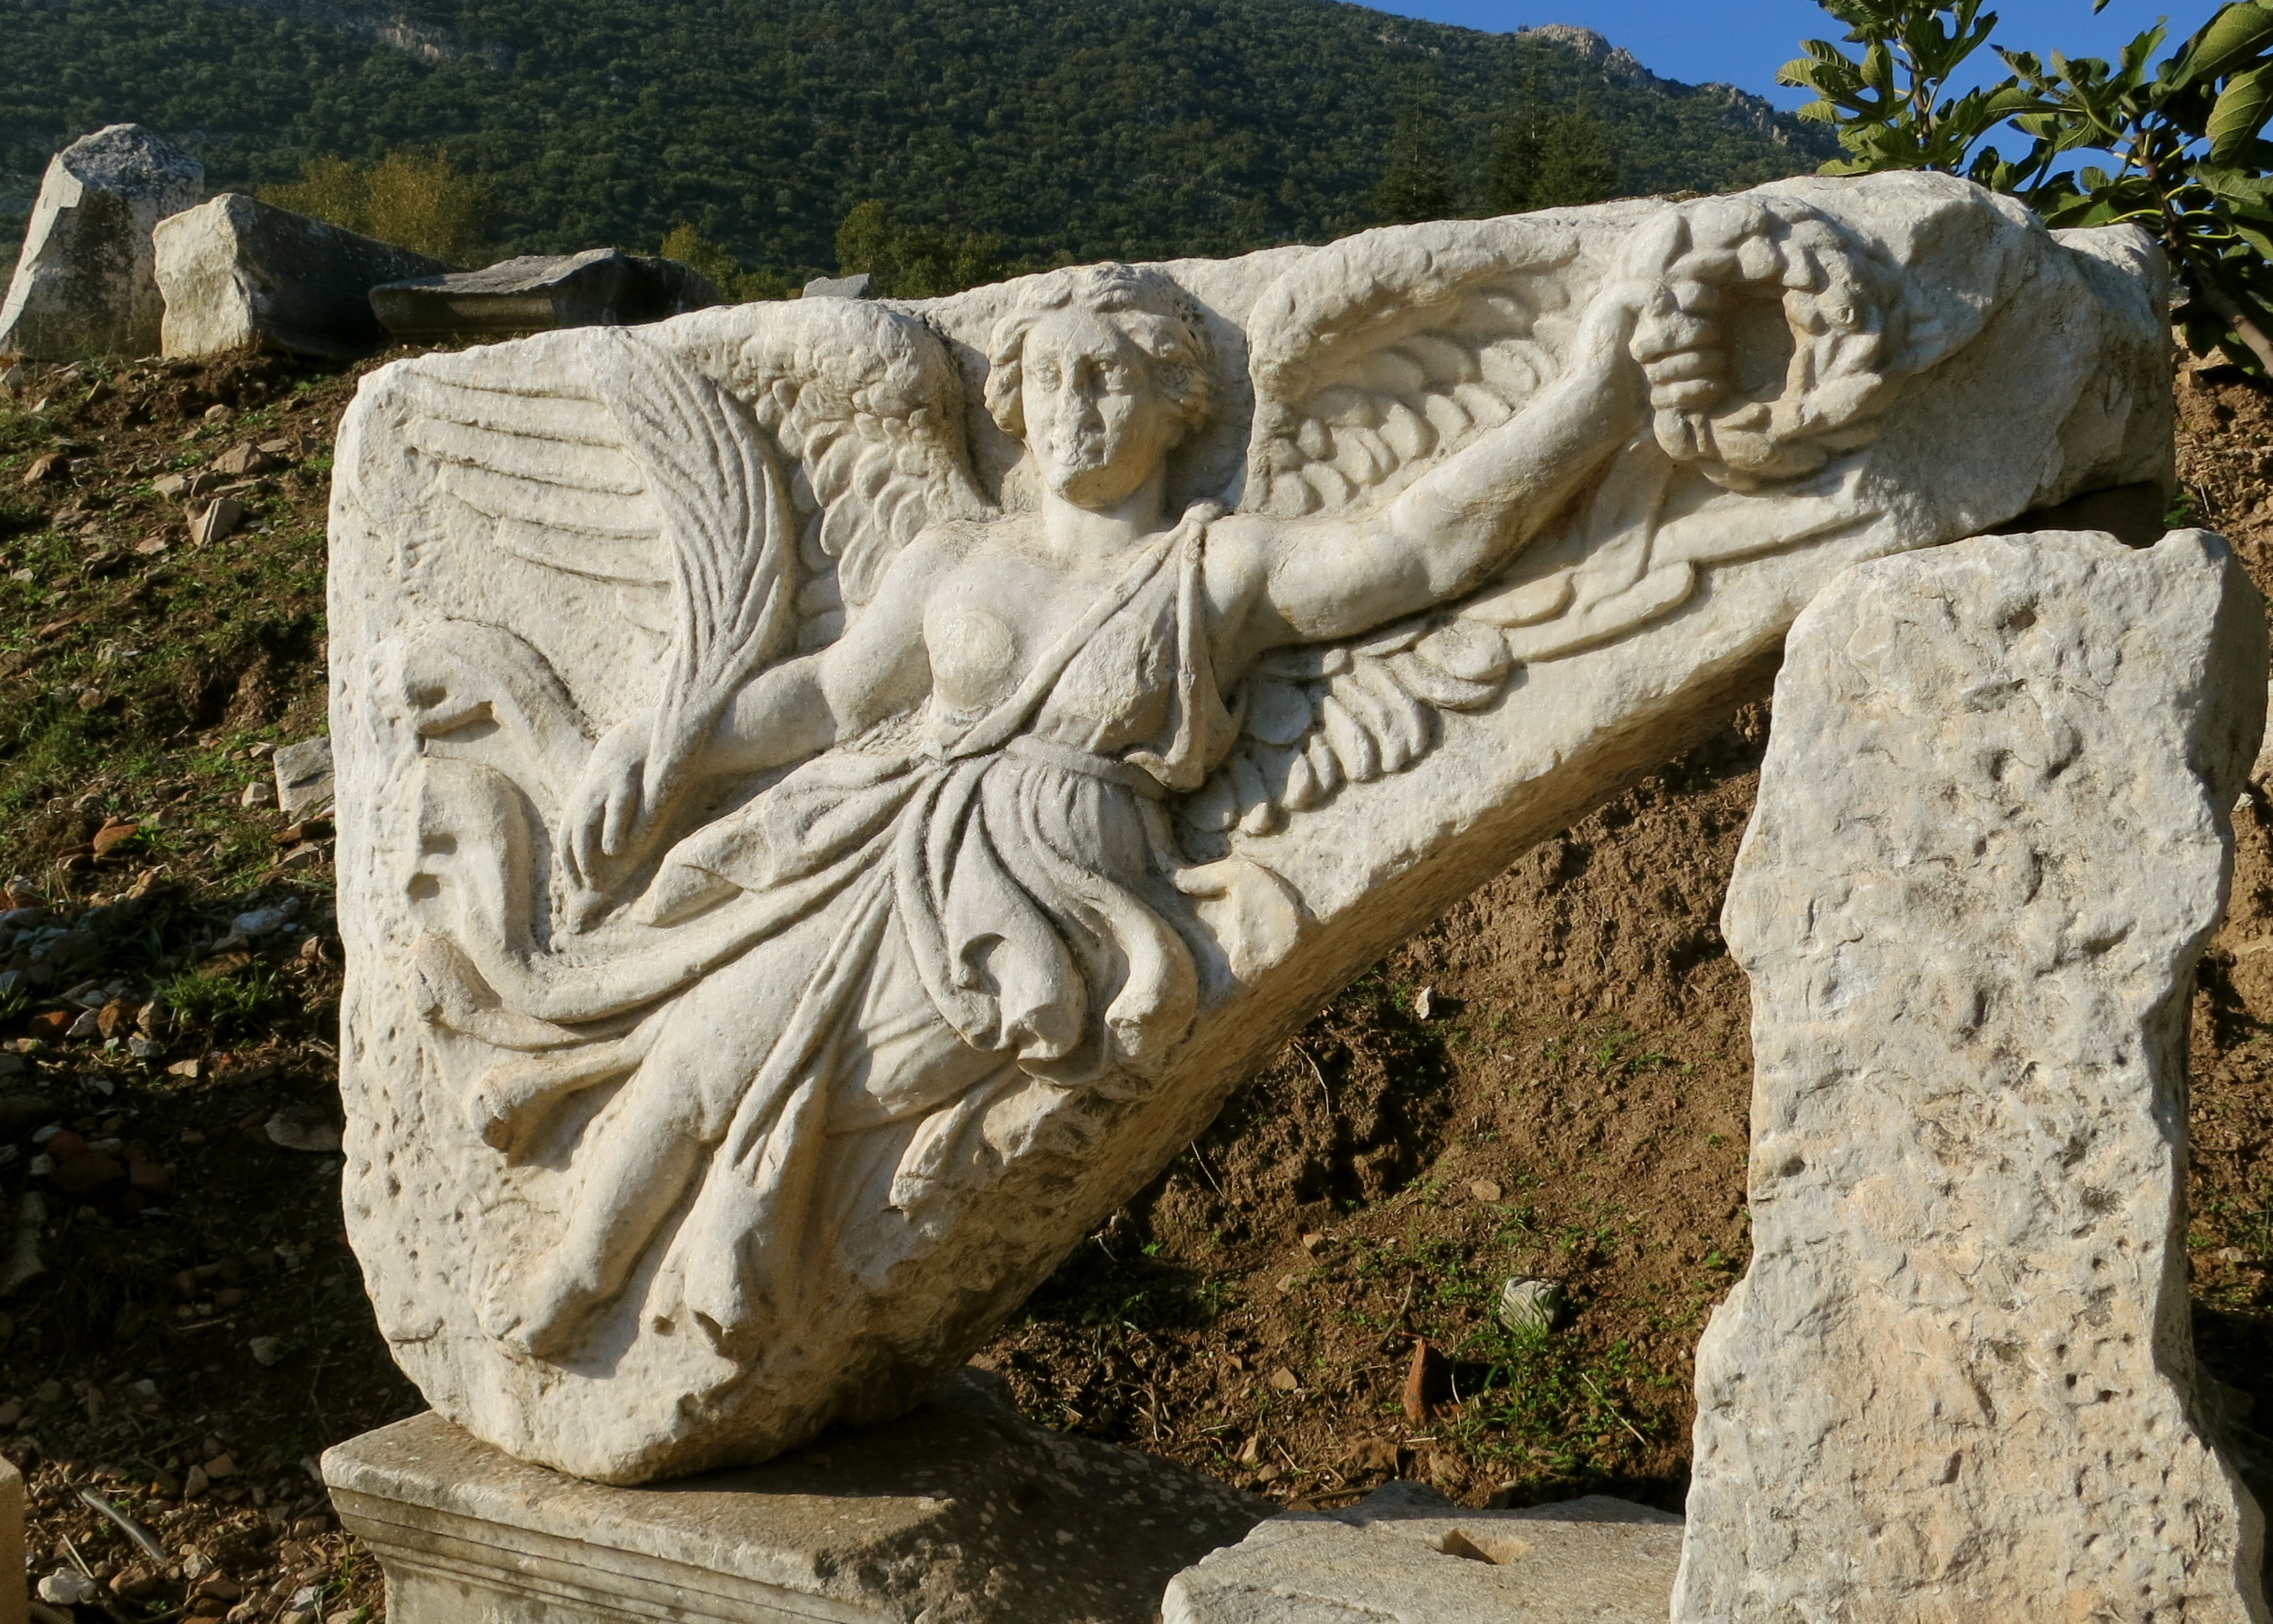 The Greek Goddess Nike, with wings all aflutter, hands over the wreath of Victory to Rome... which is appropriate since Rome took over the Greek city and turned it into the second largest city in the Roman Empire.